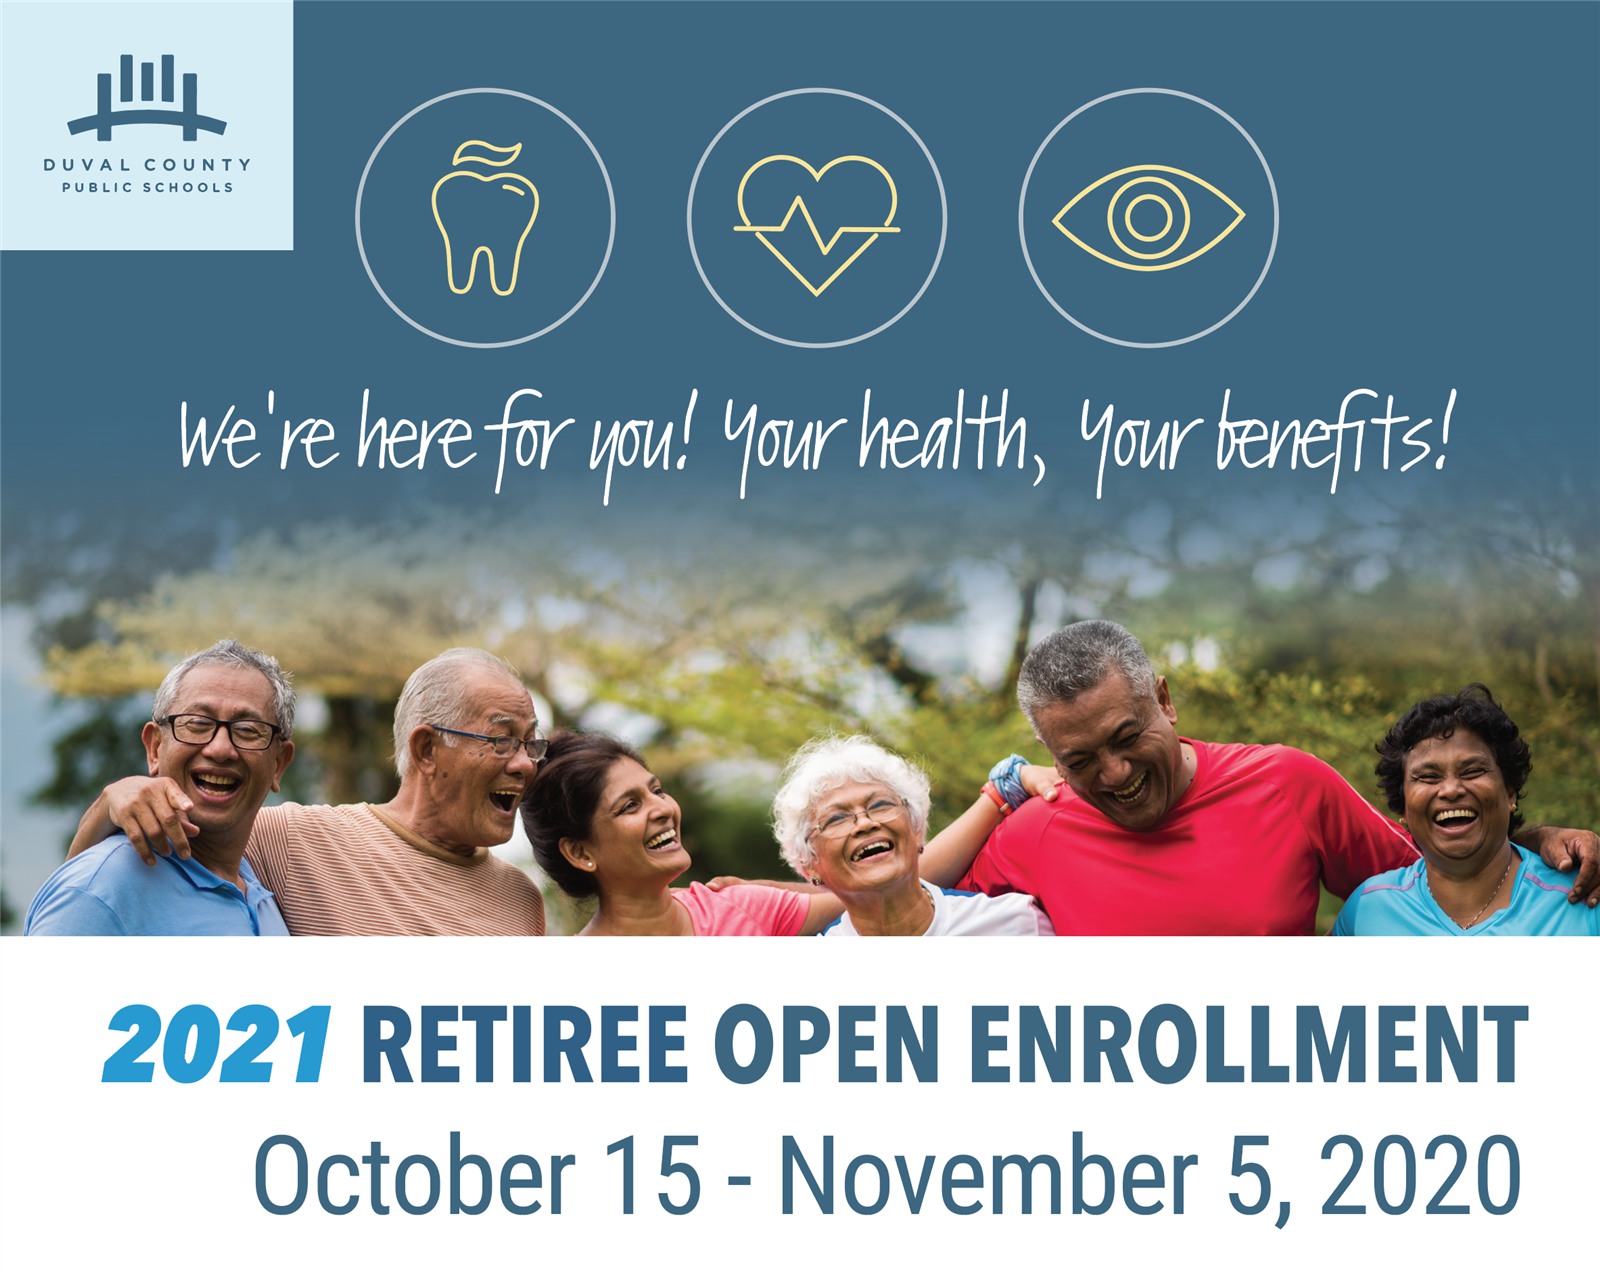 2021 Benefit Plan Year Retiree Open Enrollment October 15 - November 20